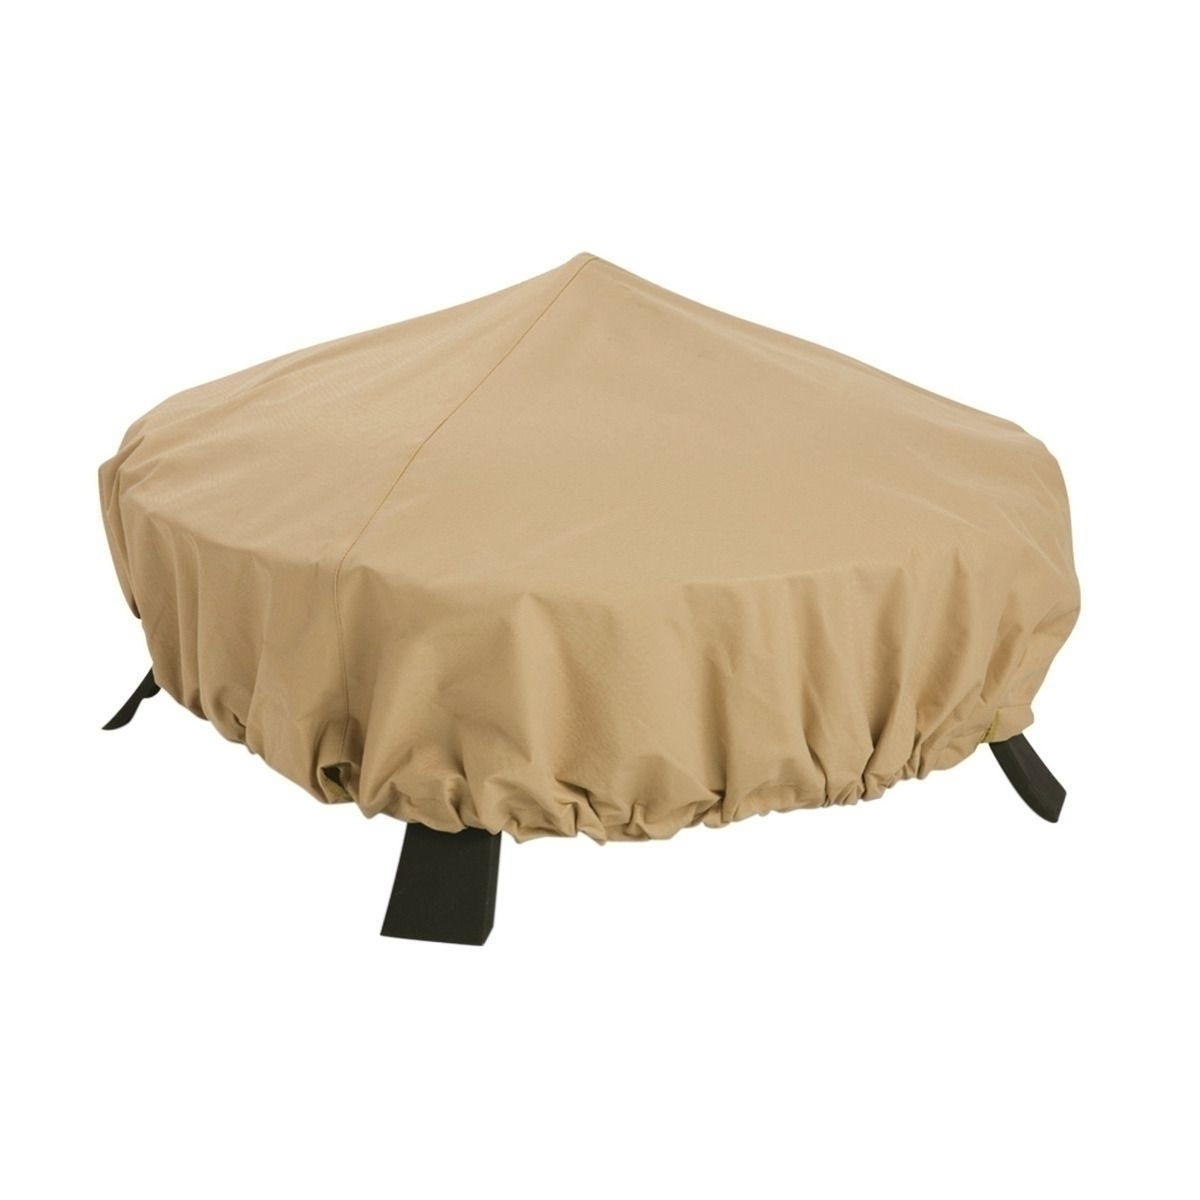 Firepit Cover - Full Coverage Sand - 36inch - 10cs - 59912-ec - Outdoor Living 59912-EC